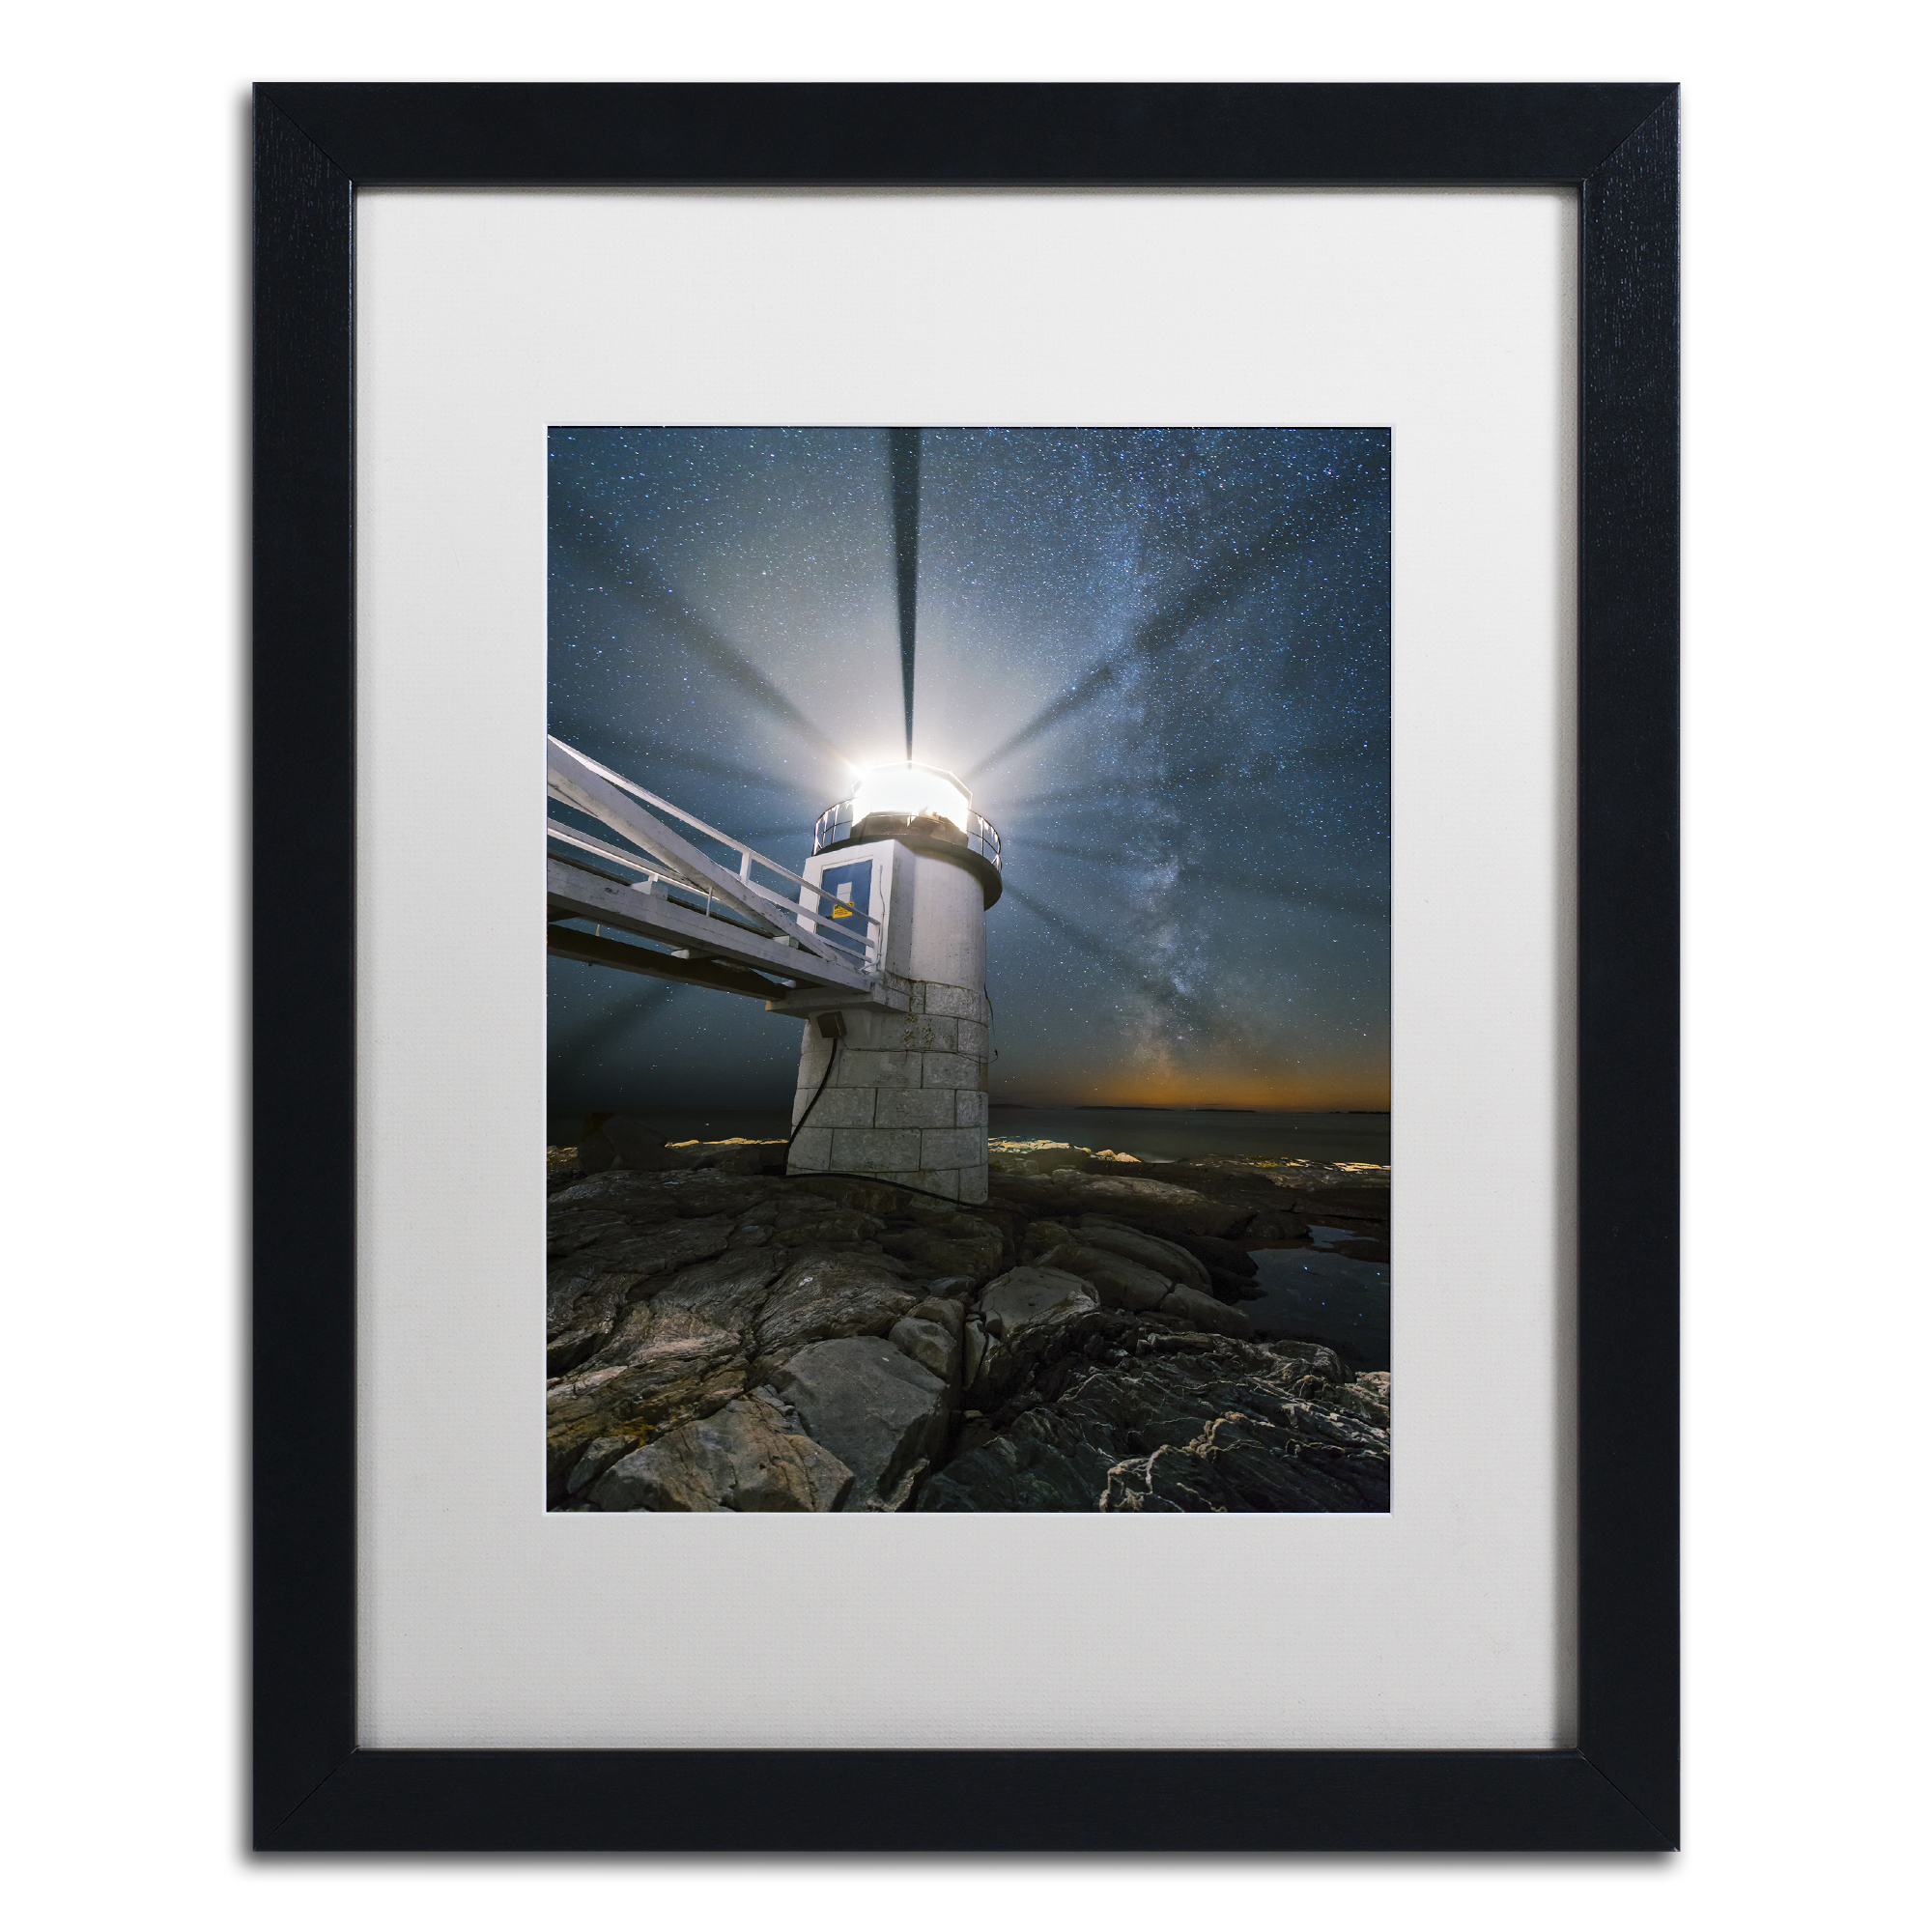 Michael Blanchette Photography 'Light Propeller' Black Wooden Framed Art 18 x 22 Inches